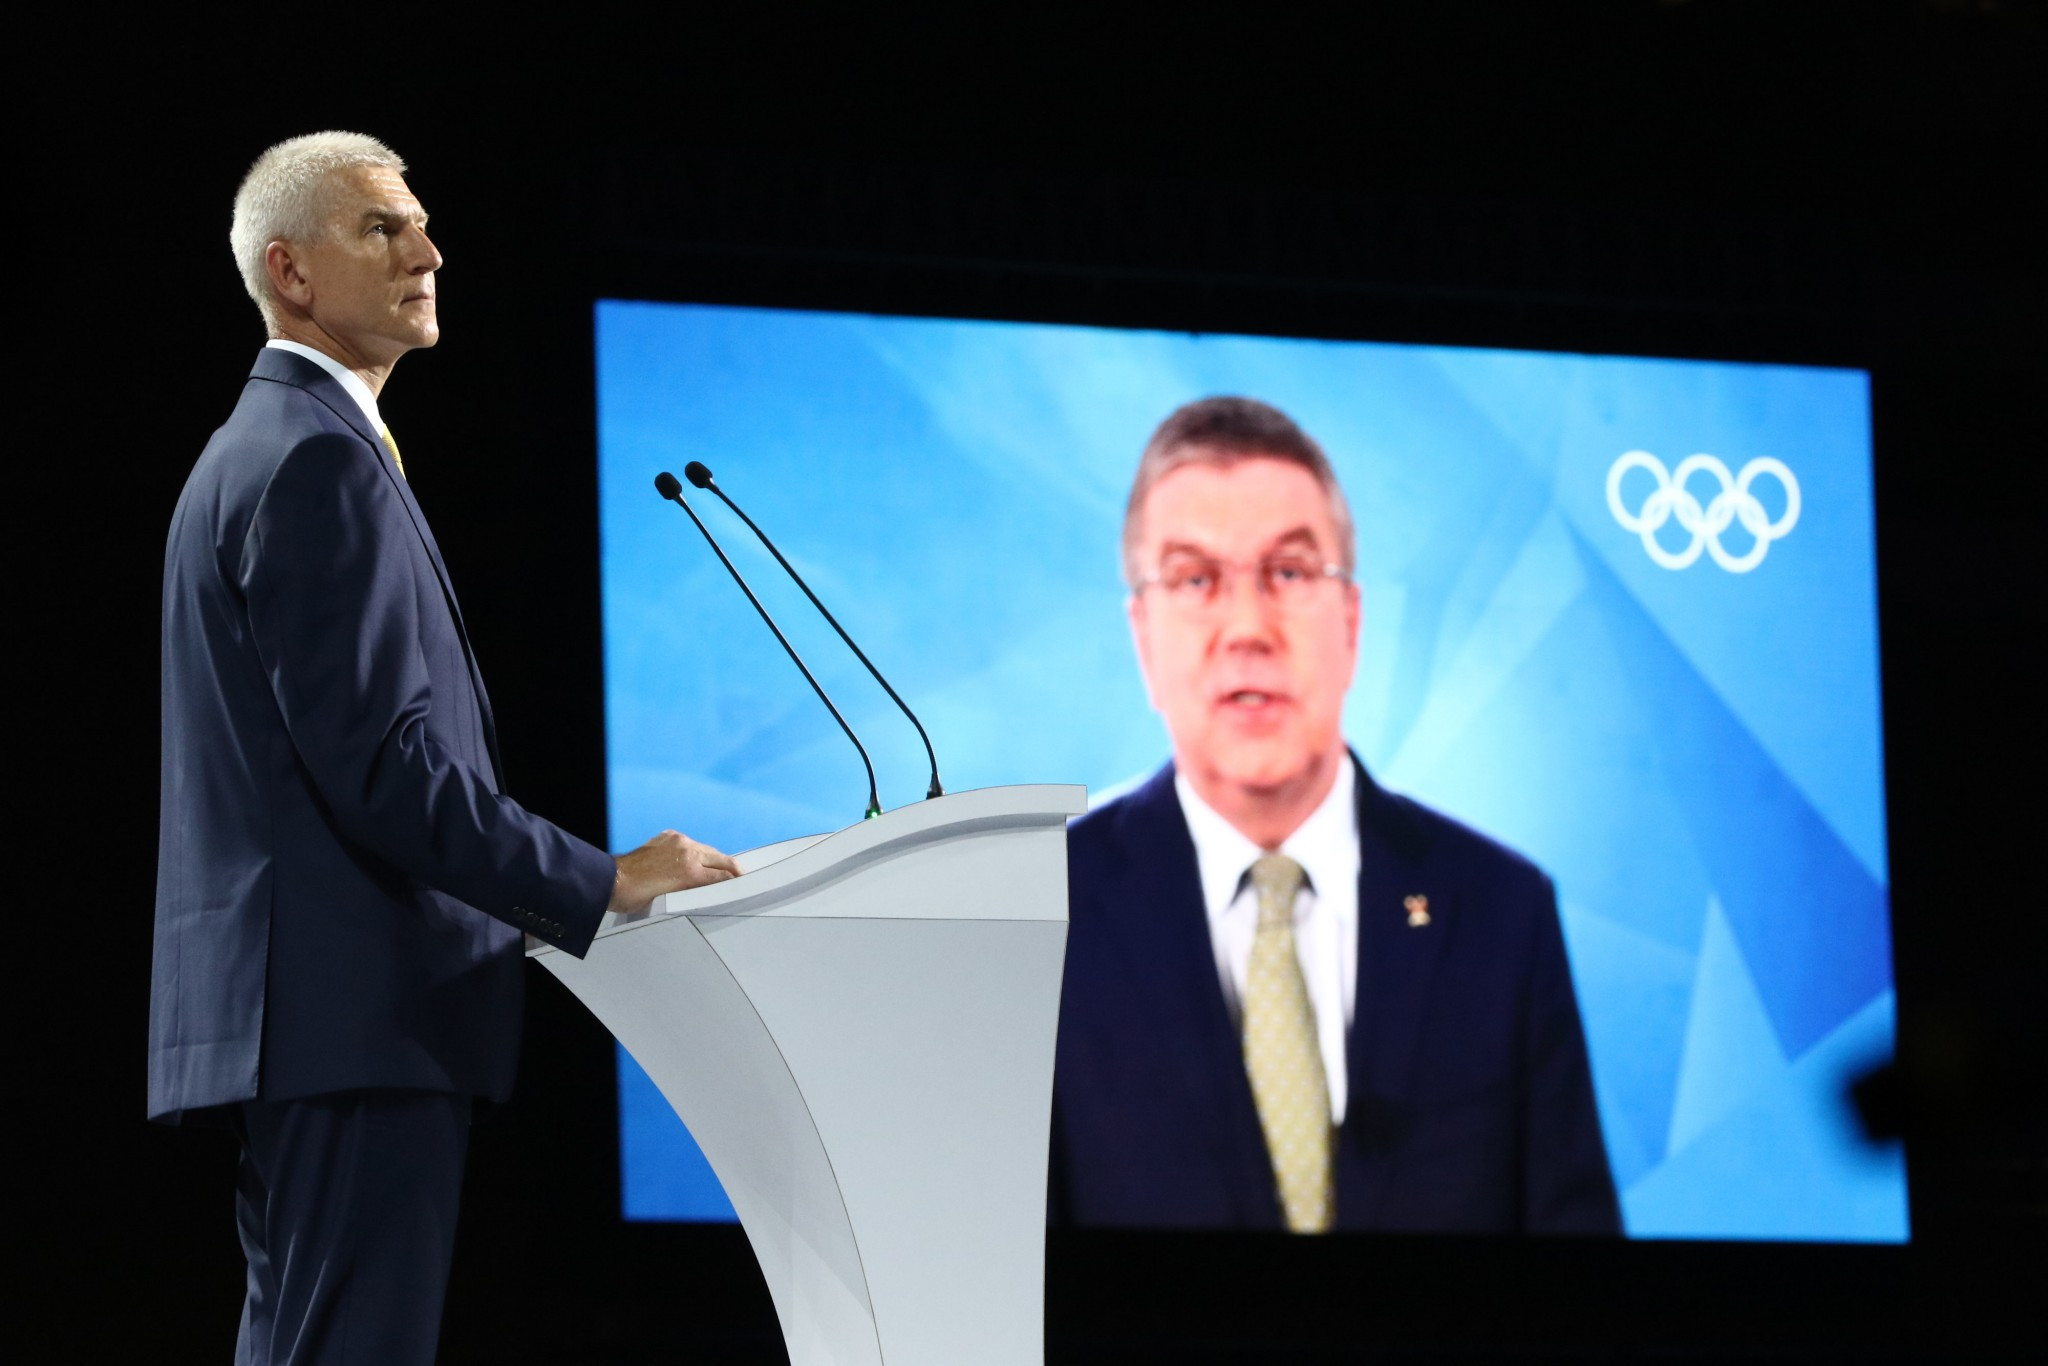 A video message from IOC President Thomas Bach played at the Opening Ceremony ©Taipei 2017